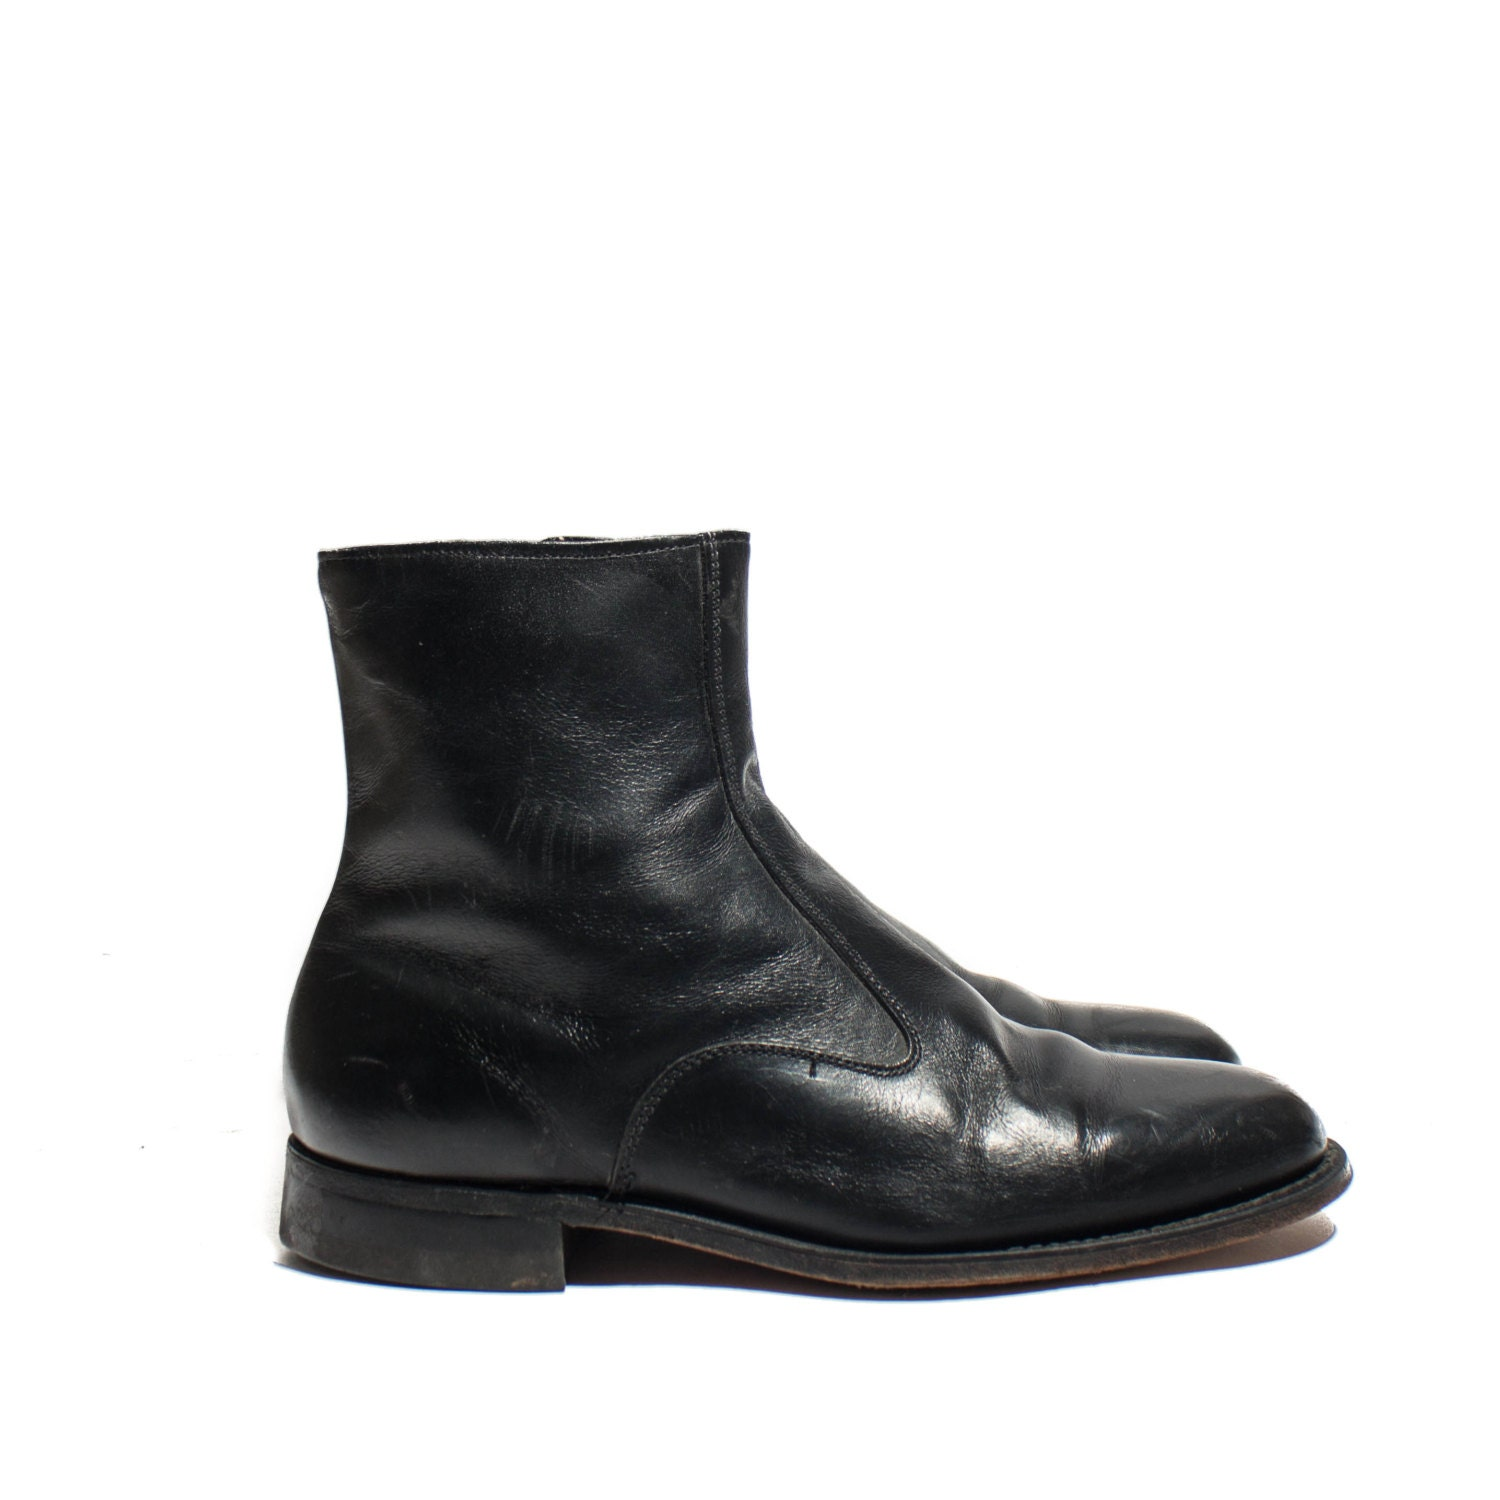 Men's Zipper Ankle Boots in Black Leather Beatle Boots for